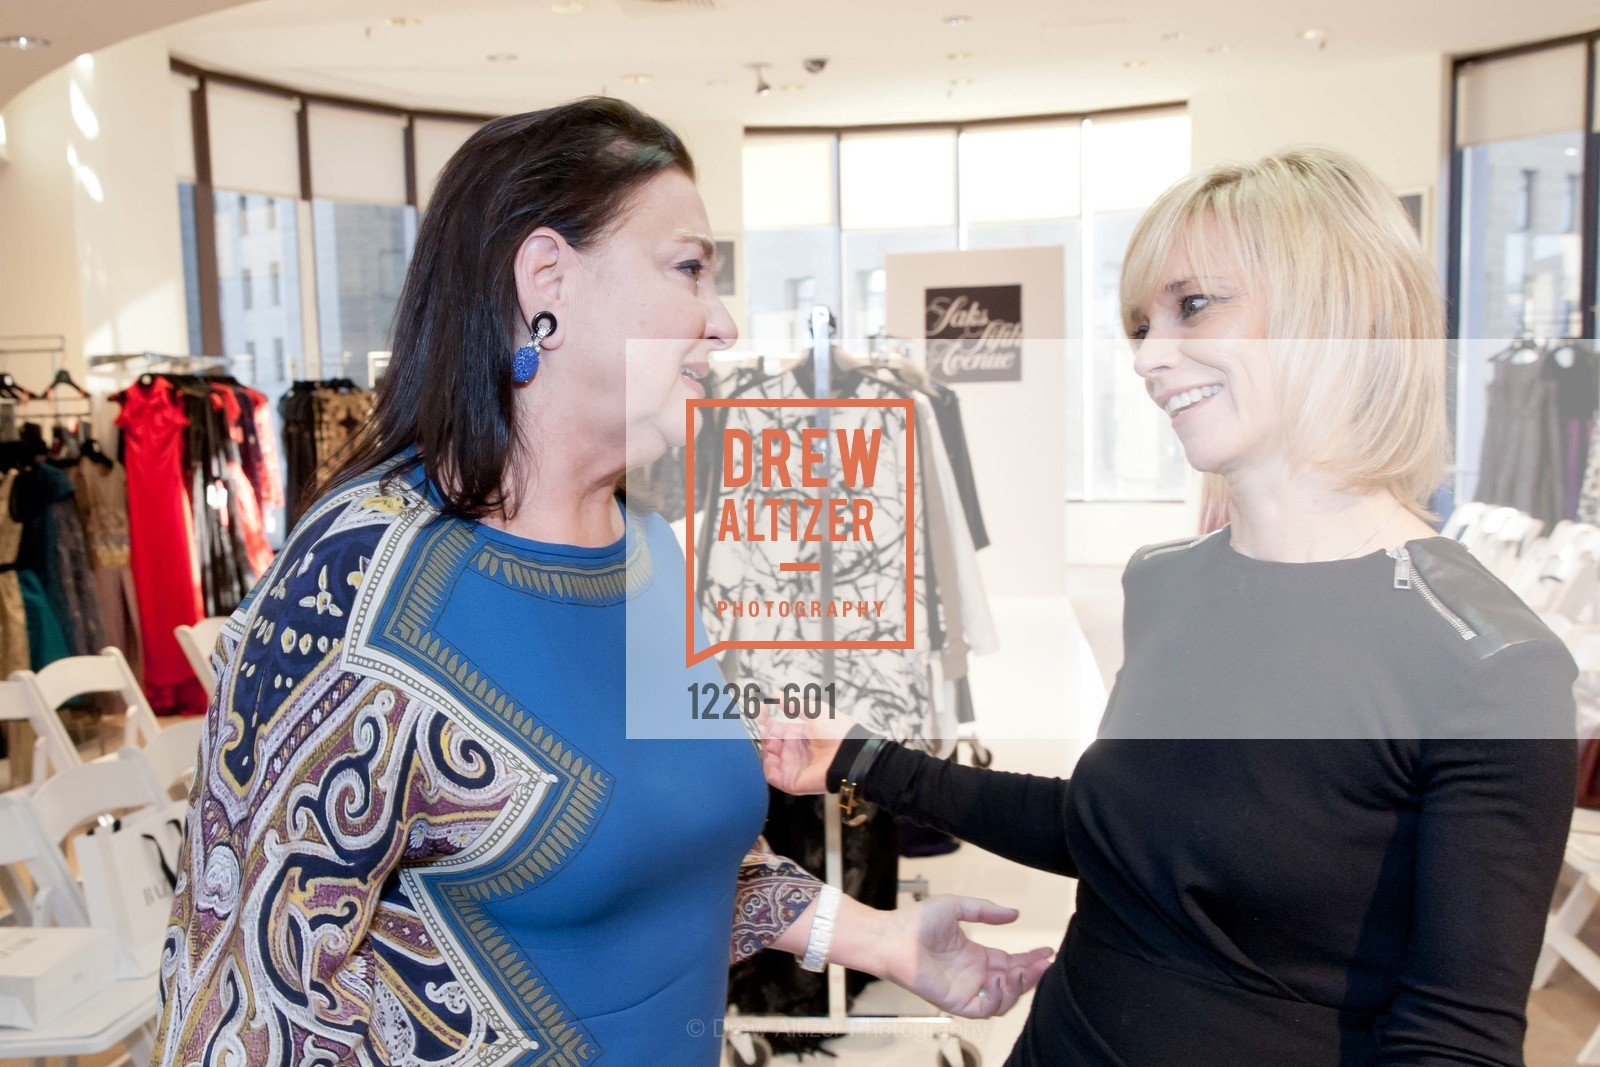 Elizabeth Merrill, Avril Graham, SAKS FIFTH AVENUE and HARPER'S BAZAAR Host the San Francisco Yacht Club, US, October 9th, 2014,Drew Altizer, Drew Altizer Photography, full-service agency, private events, San Francisco photographer, photographer california